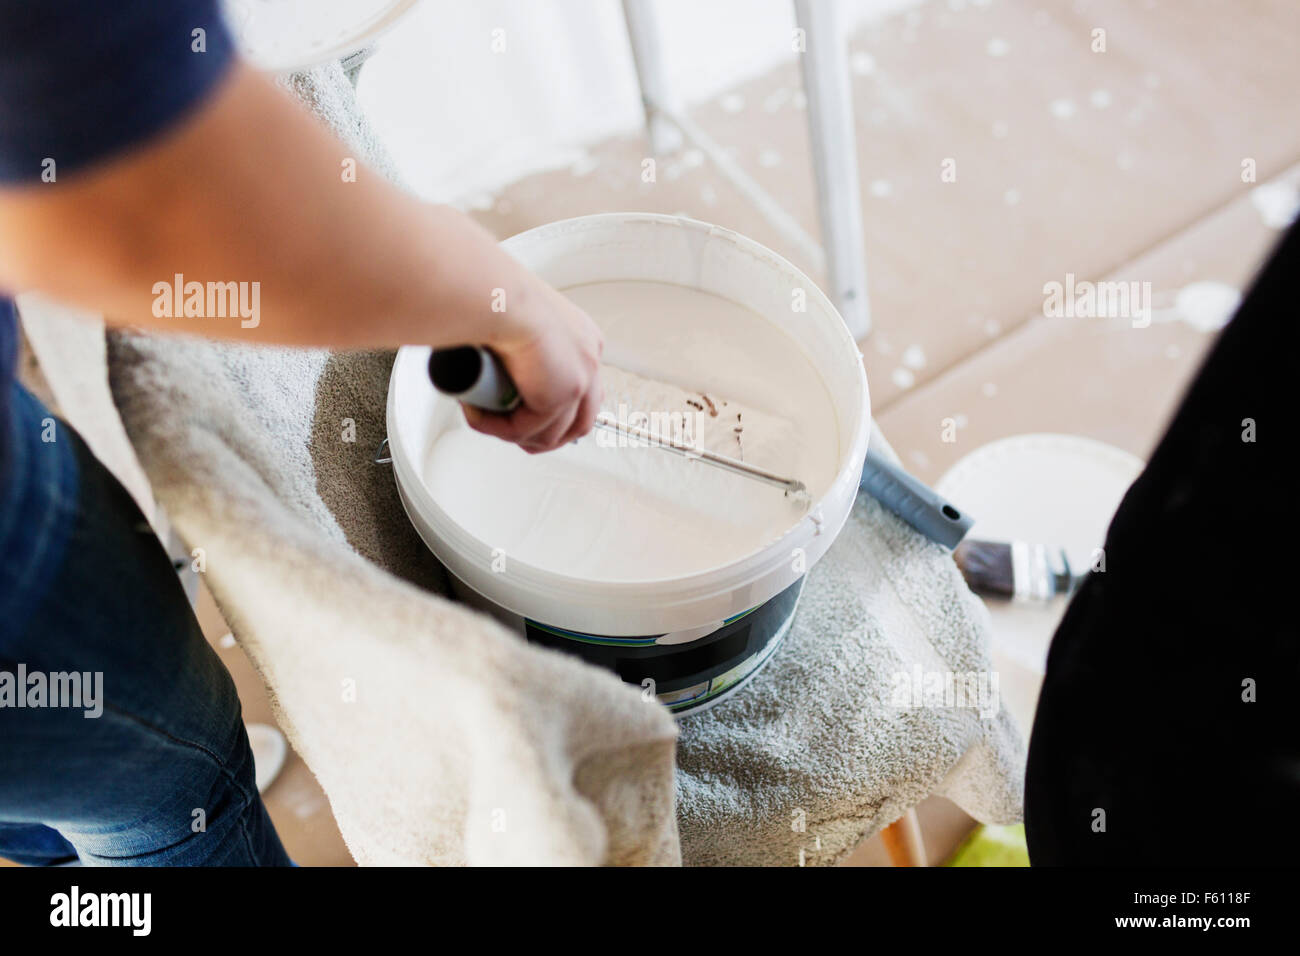 Human hand dipping paint roller in paint container Stock Photo